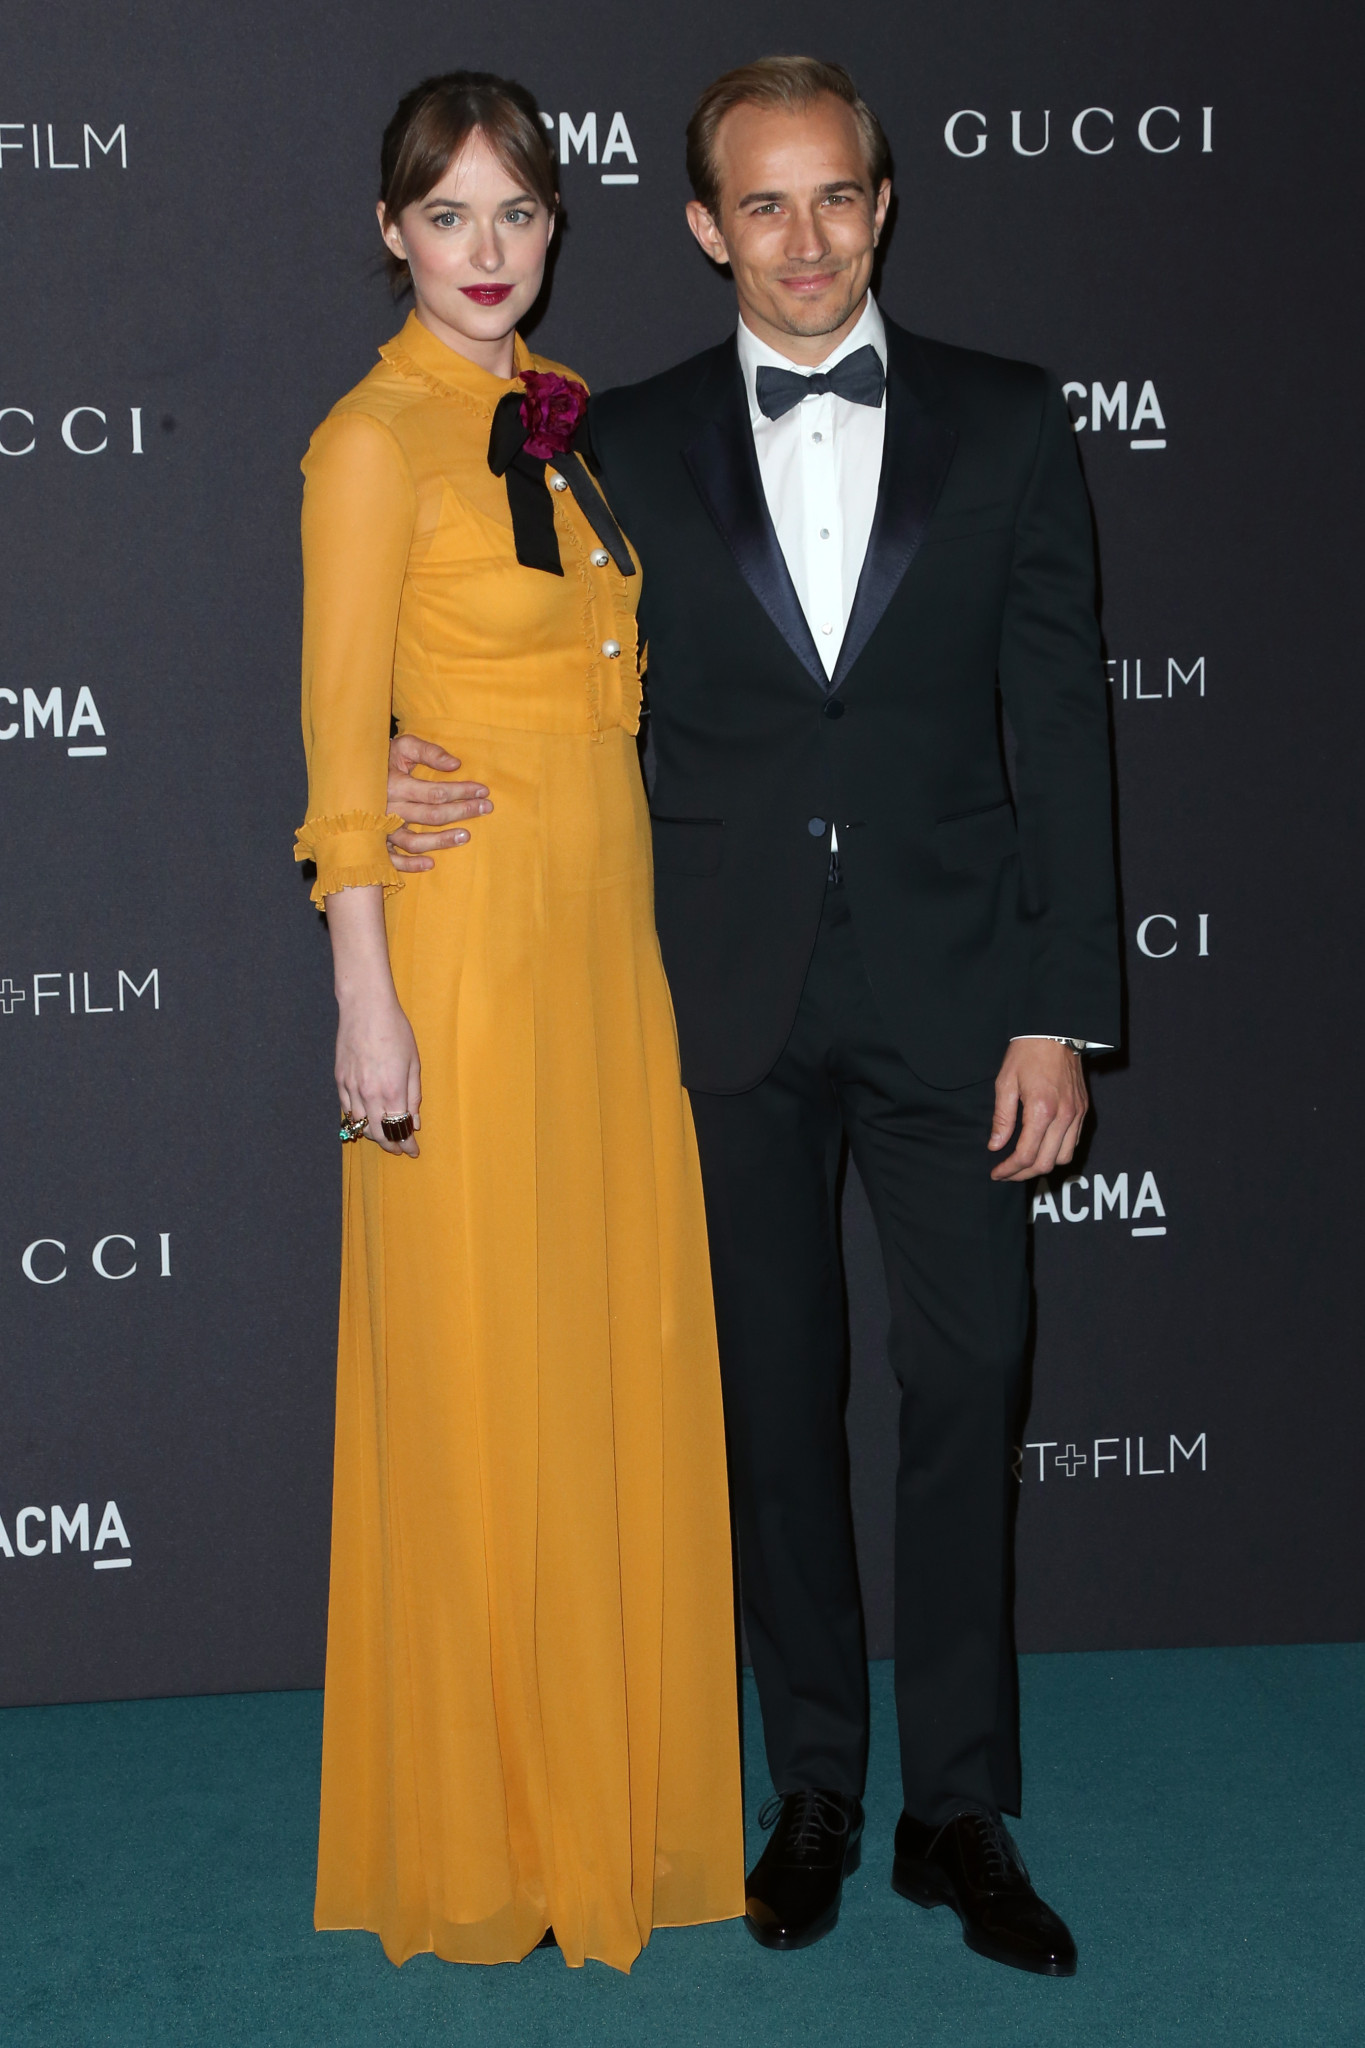 LOS ANGELES, CA - NOVEMBER 07:  Actress Dakota Johnson (L) and Jesse Johnson attend LACMA 2015 Art+Film Gala Honoring James Turrell and Alejandro G Iñárritu, Presented by Gucci at LACMA on November 7, 2015 in Los Angeles, California.  (Photo by Frederick M. Brown/Getty Images)